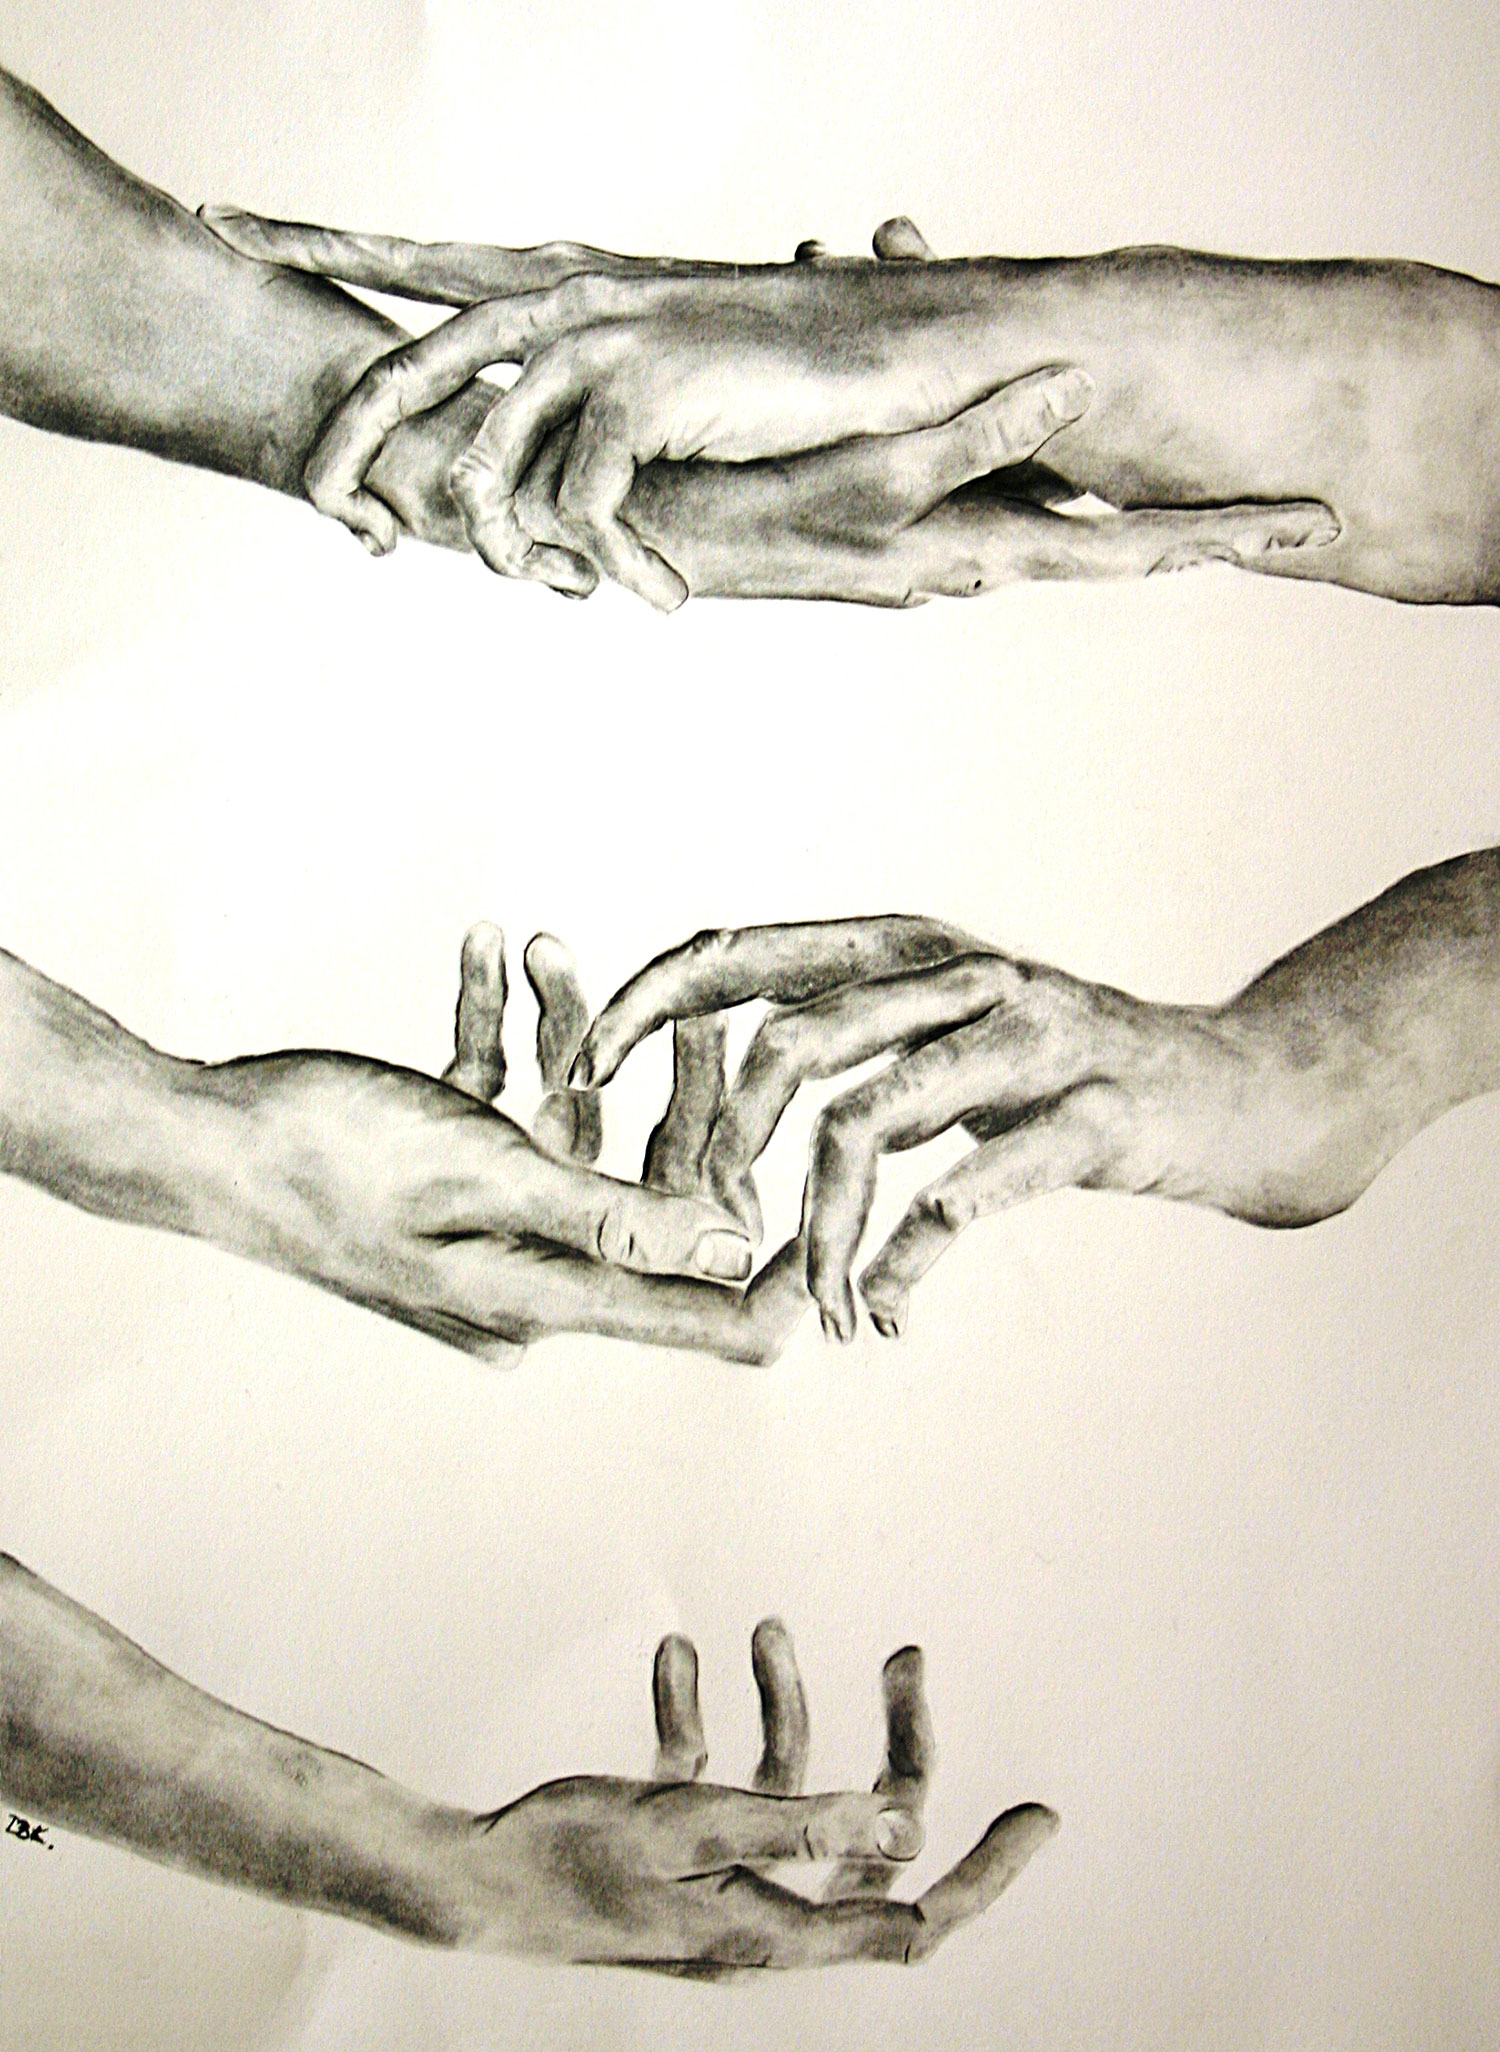 2nd year student Danica Koller submitted this illustration, Hands, as part of her student application portfolio.